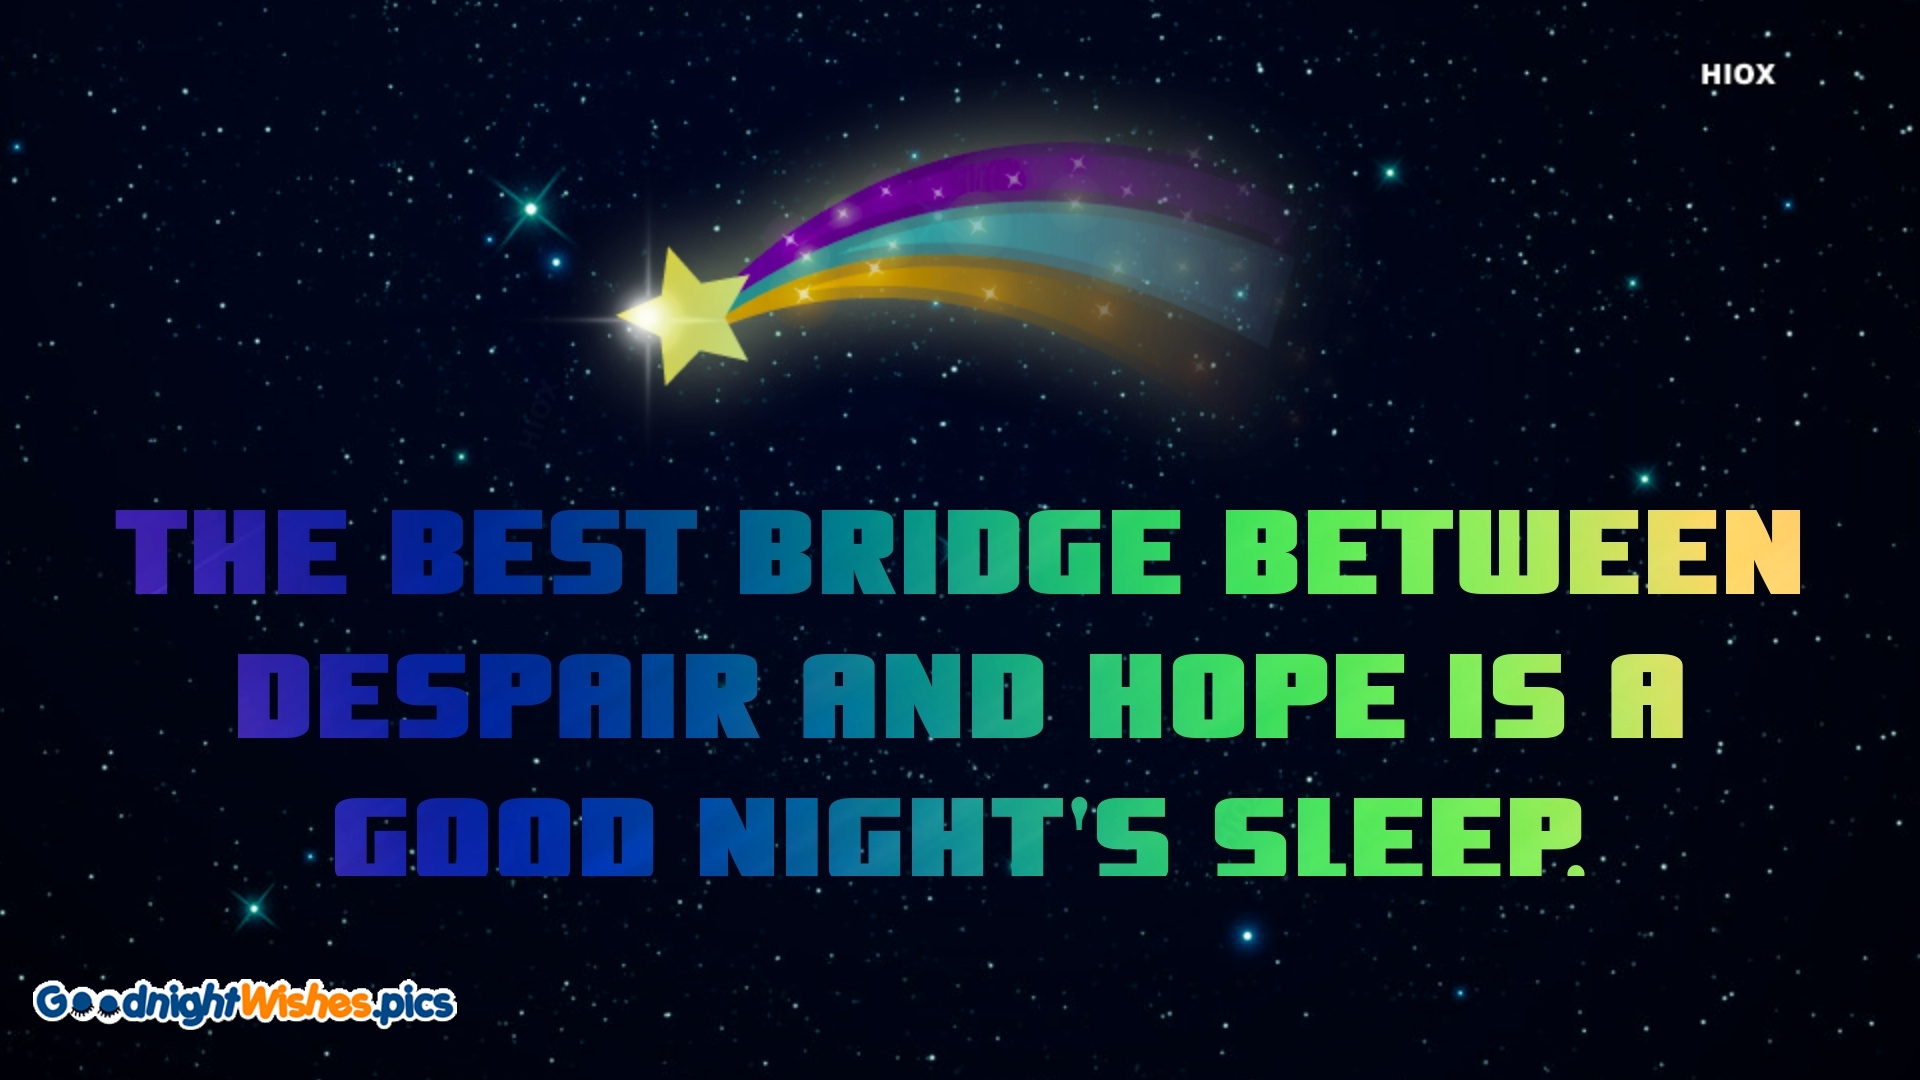 Good Night With Hope